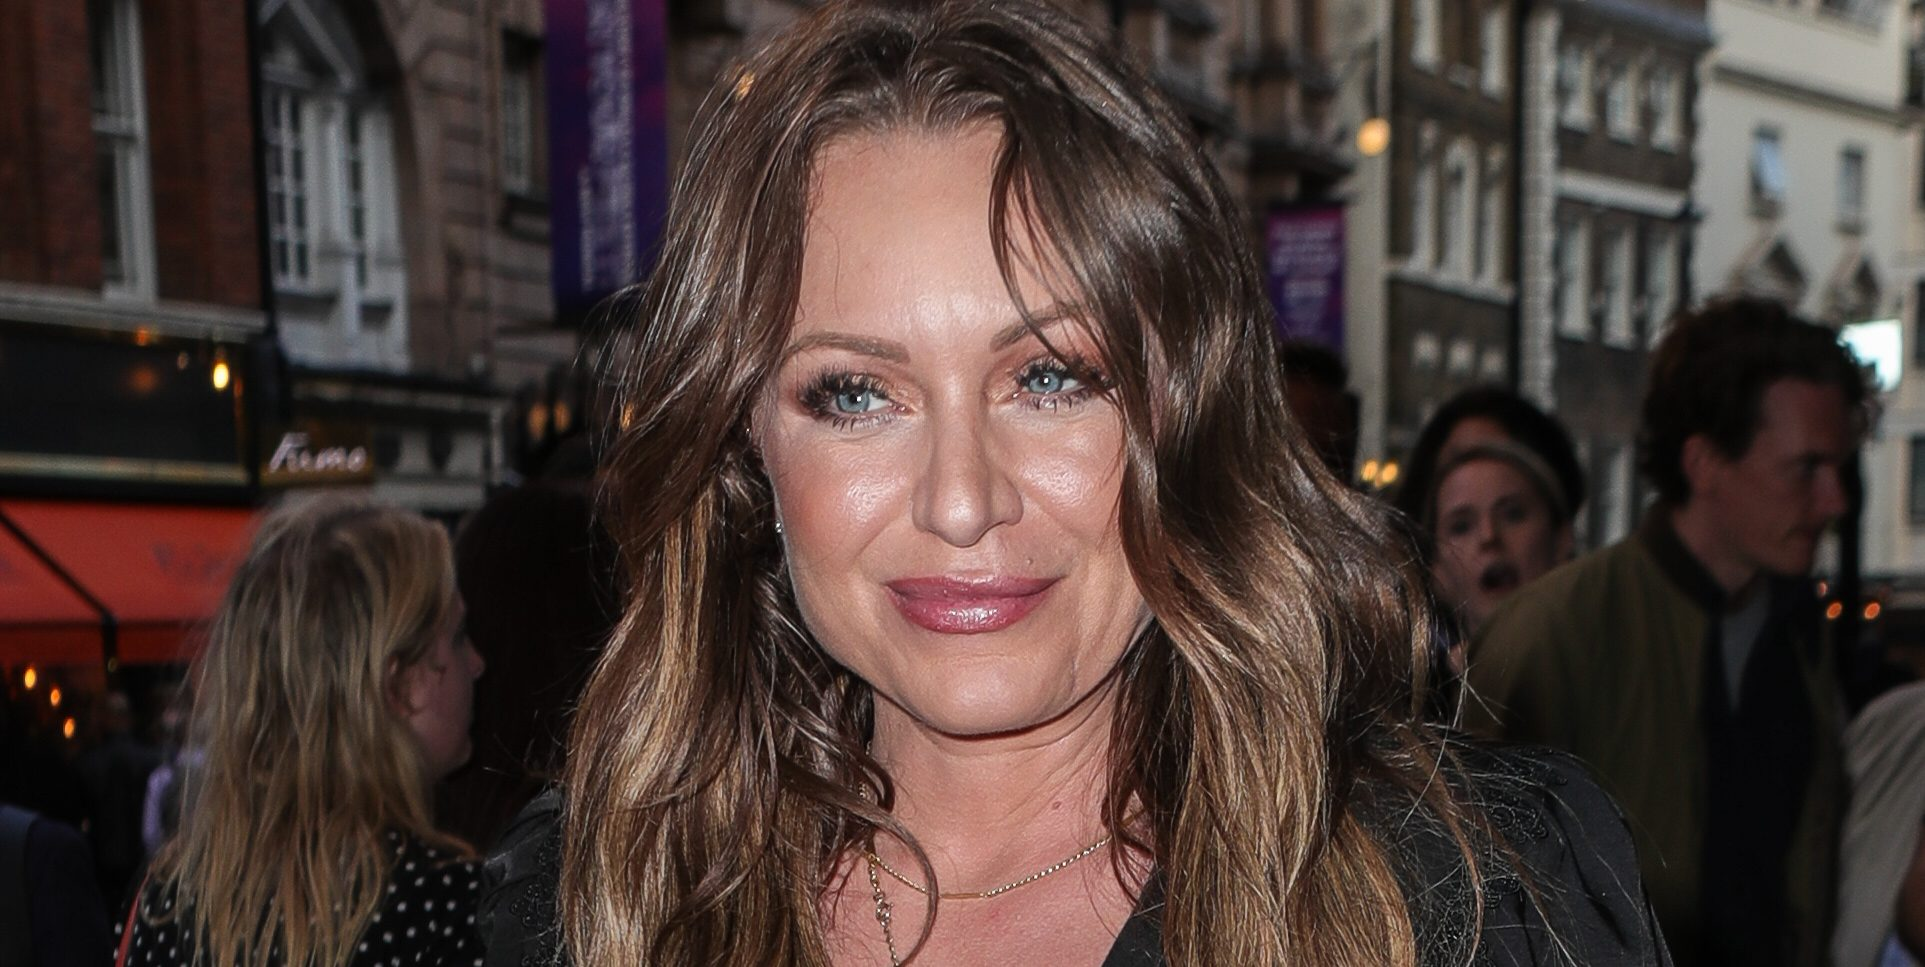 Girl on the Train press night arrivals at the Duke of York's Theatre Pictured: Rita Simons Ref: SPL5106772 300719 NON-EXCLUSIVE Picture by: SplashNews.com Splash News and Pictures Los Angeles: 310-821-2666 New York: 212-619-2666 London: +44 (0)20 7644 7656 Berlin: +49 175 3764 166 photodesk@splashnews.com World Rights